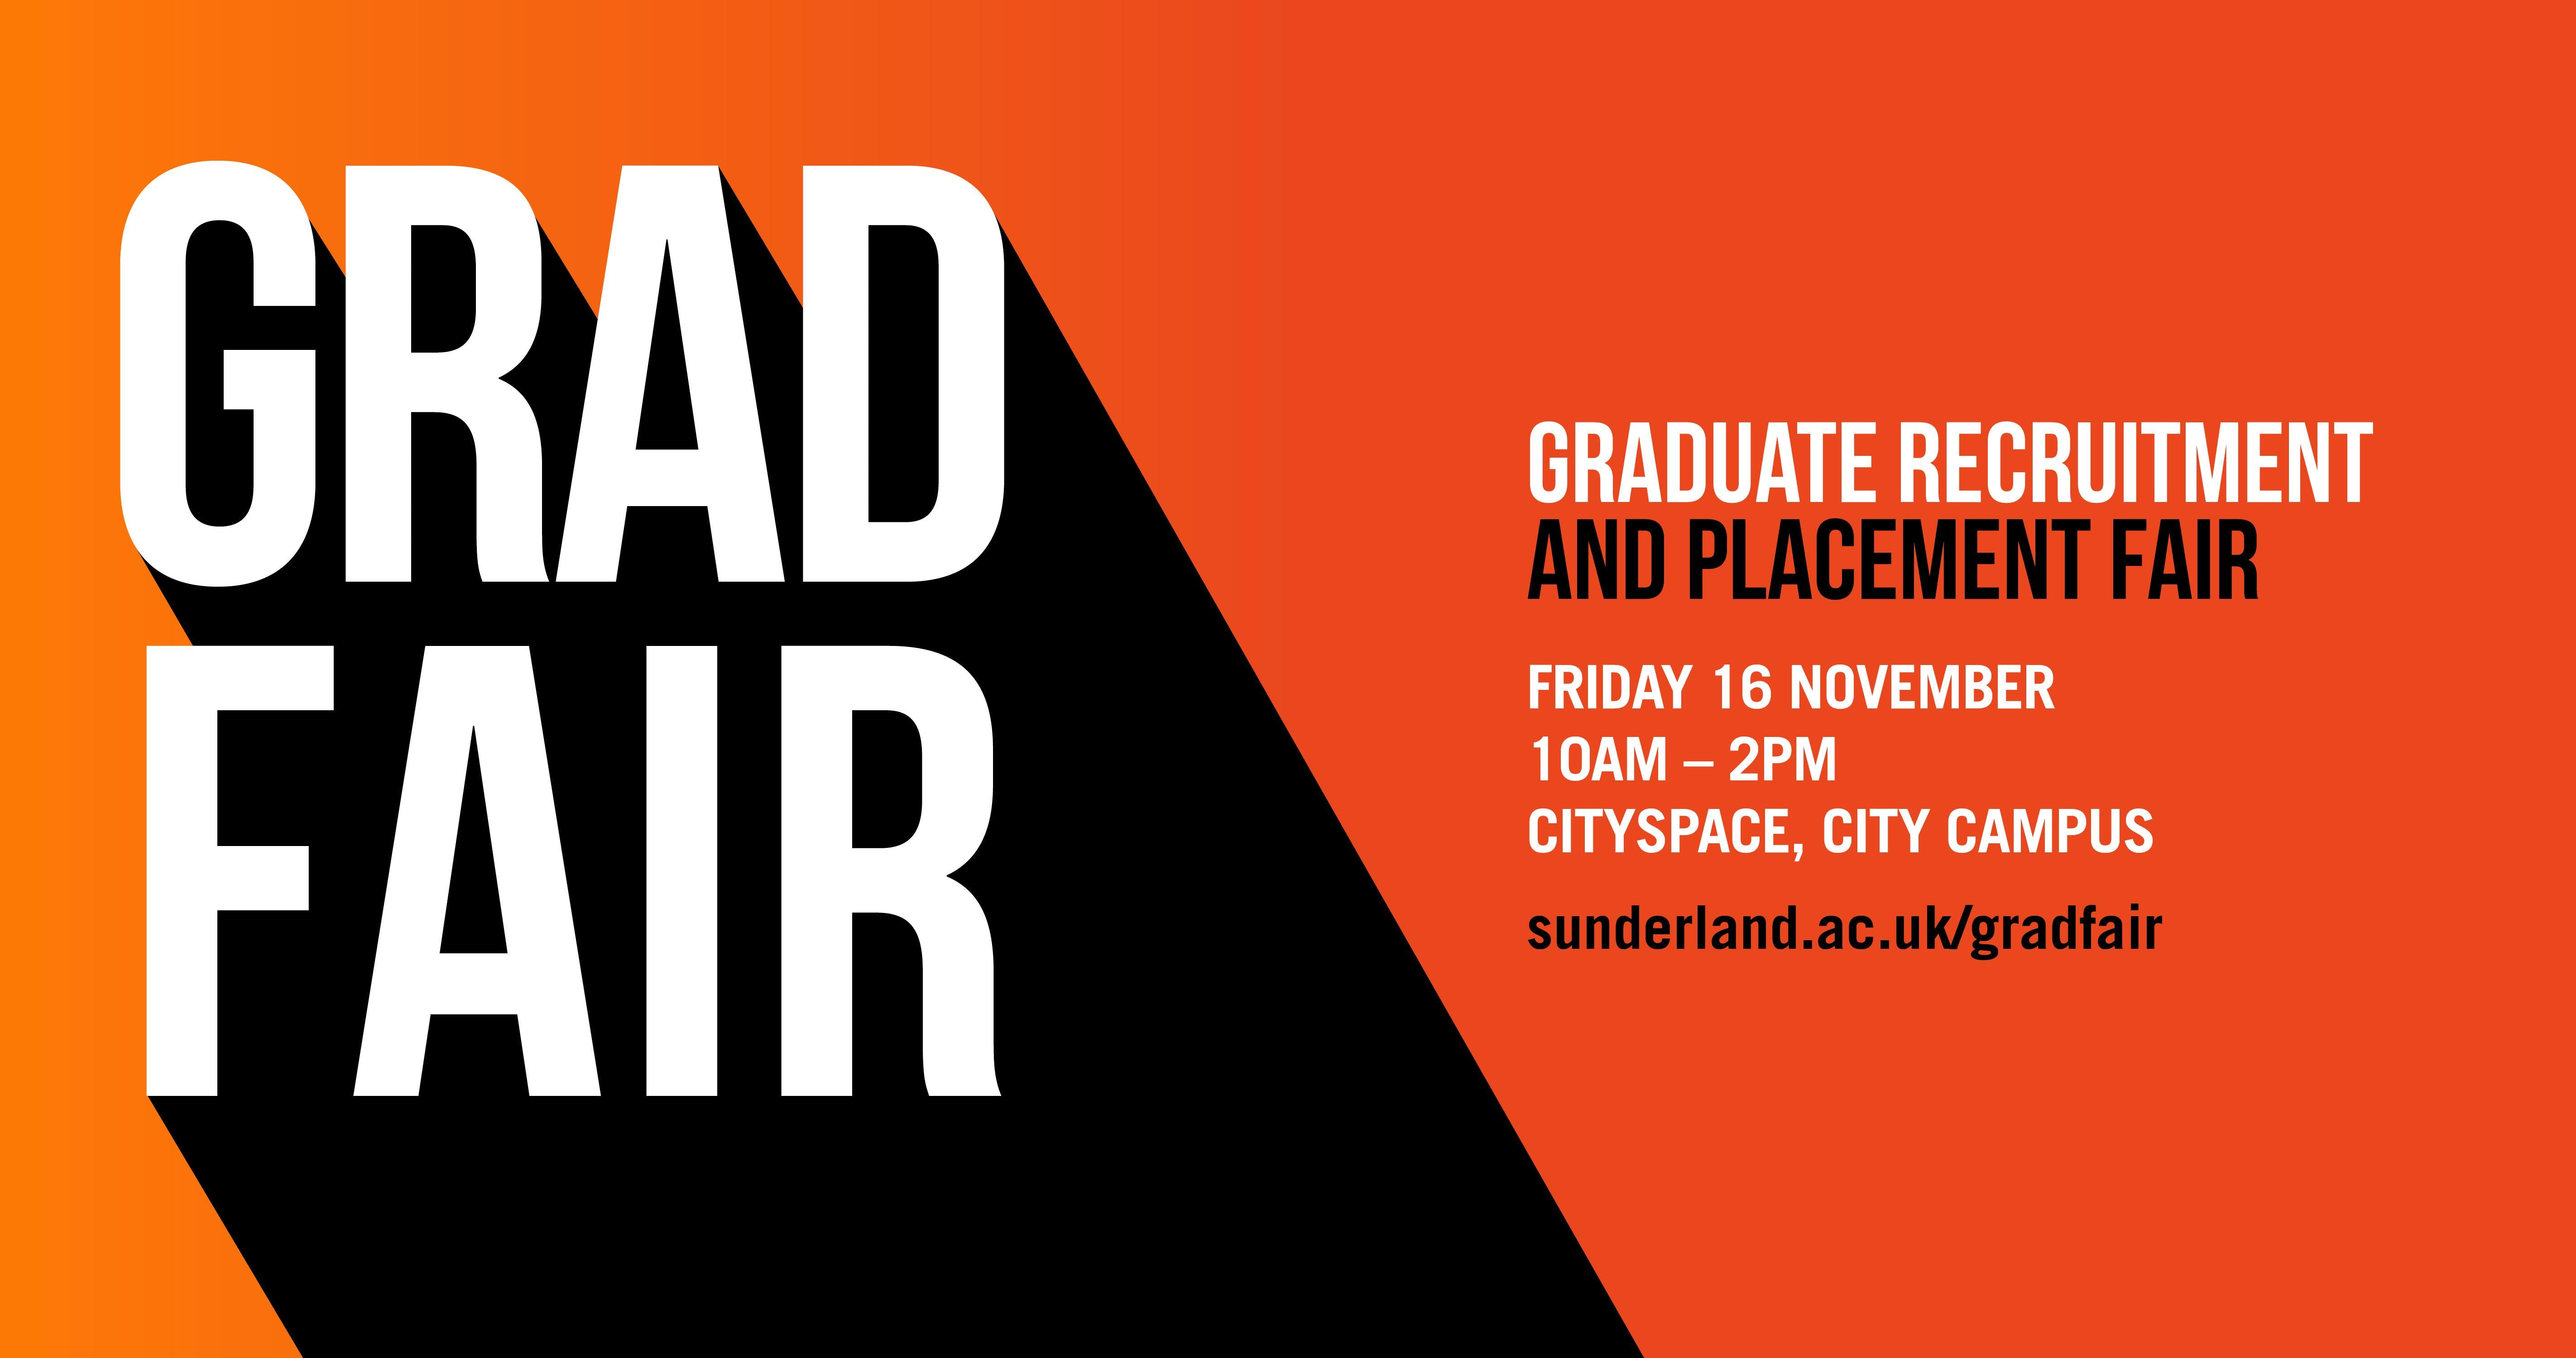 Graduate Recruitment and Placement Fair 2018